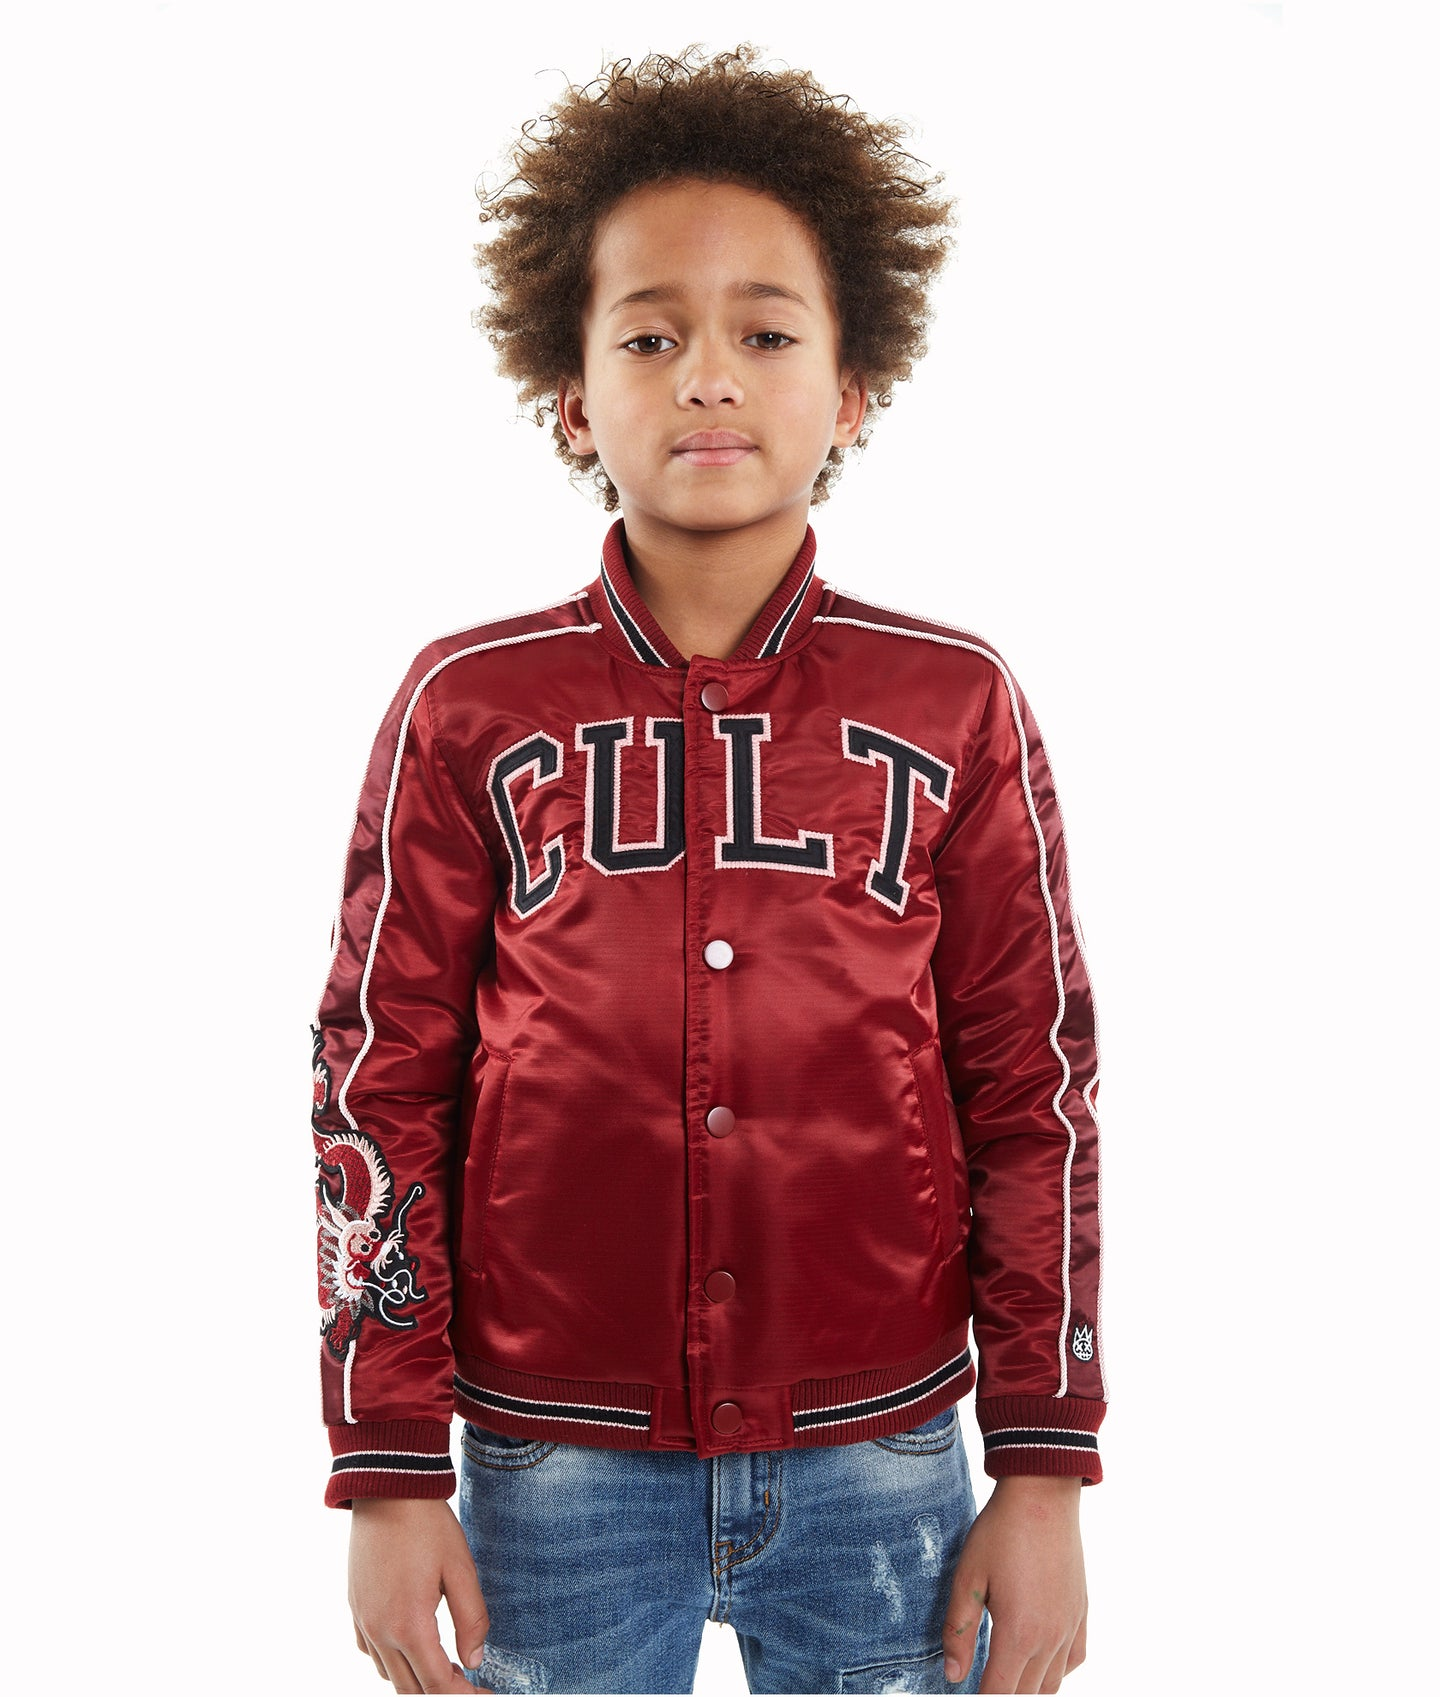 Cult of IndividualityKid's Cult Varsity Jacket in BurgundyXL